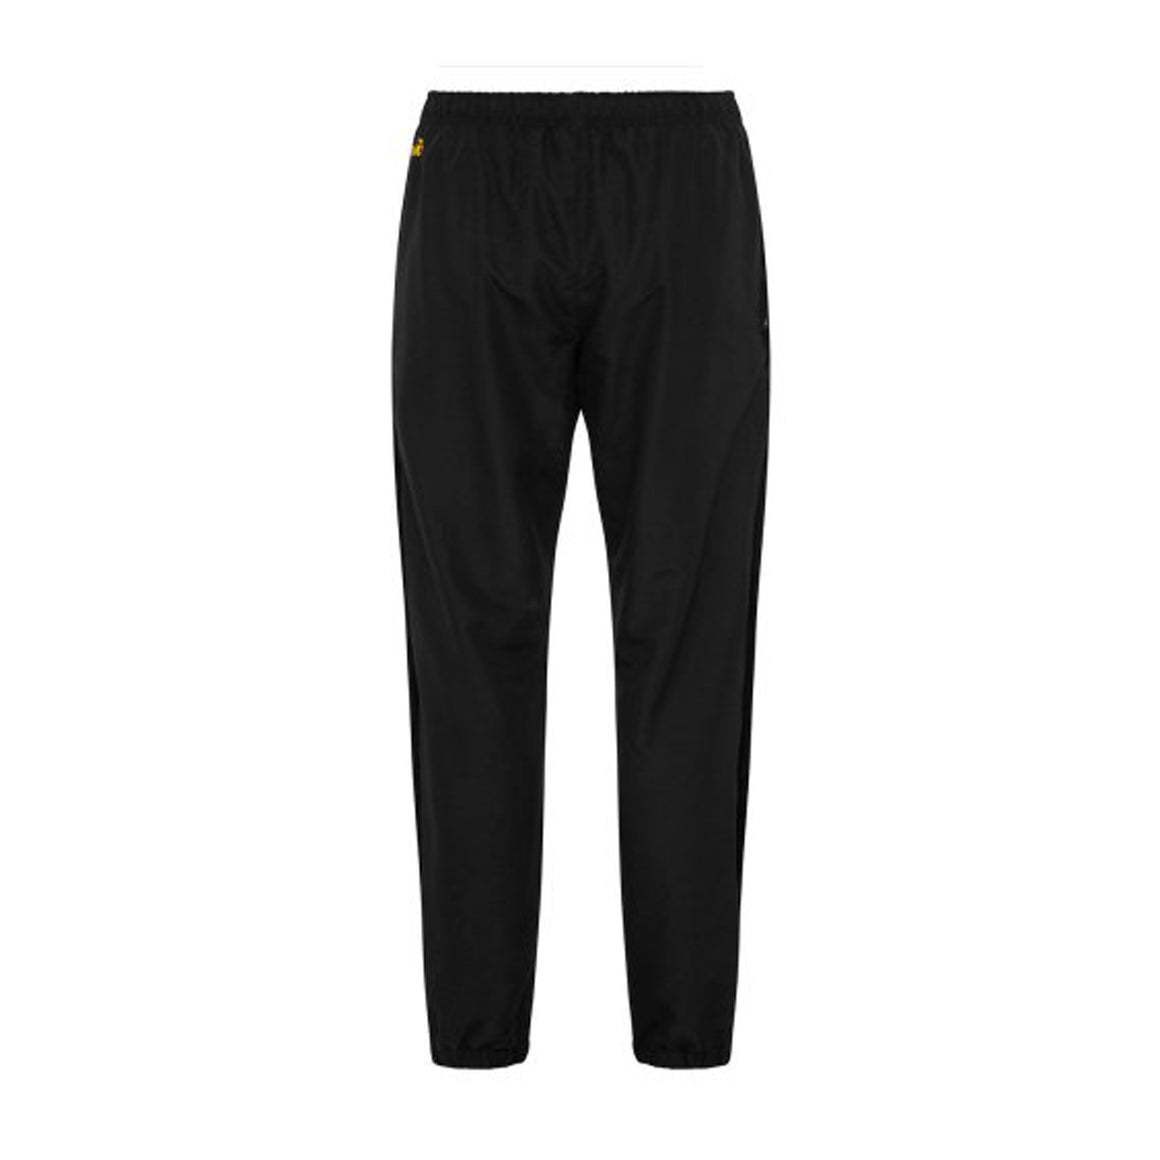 CCC Uglies Tapered Cuff Pant for Men in Black